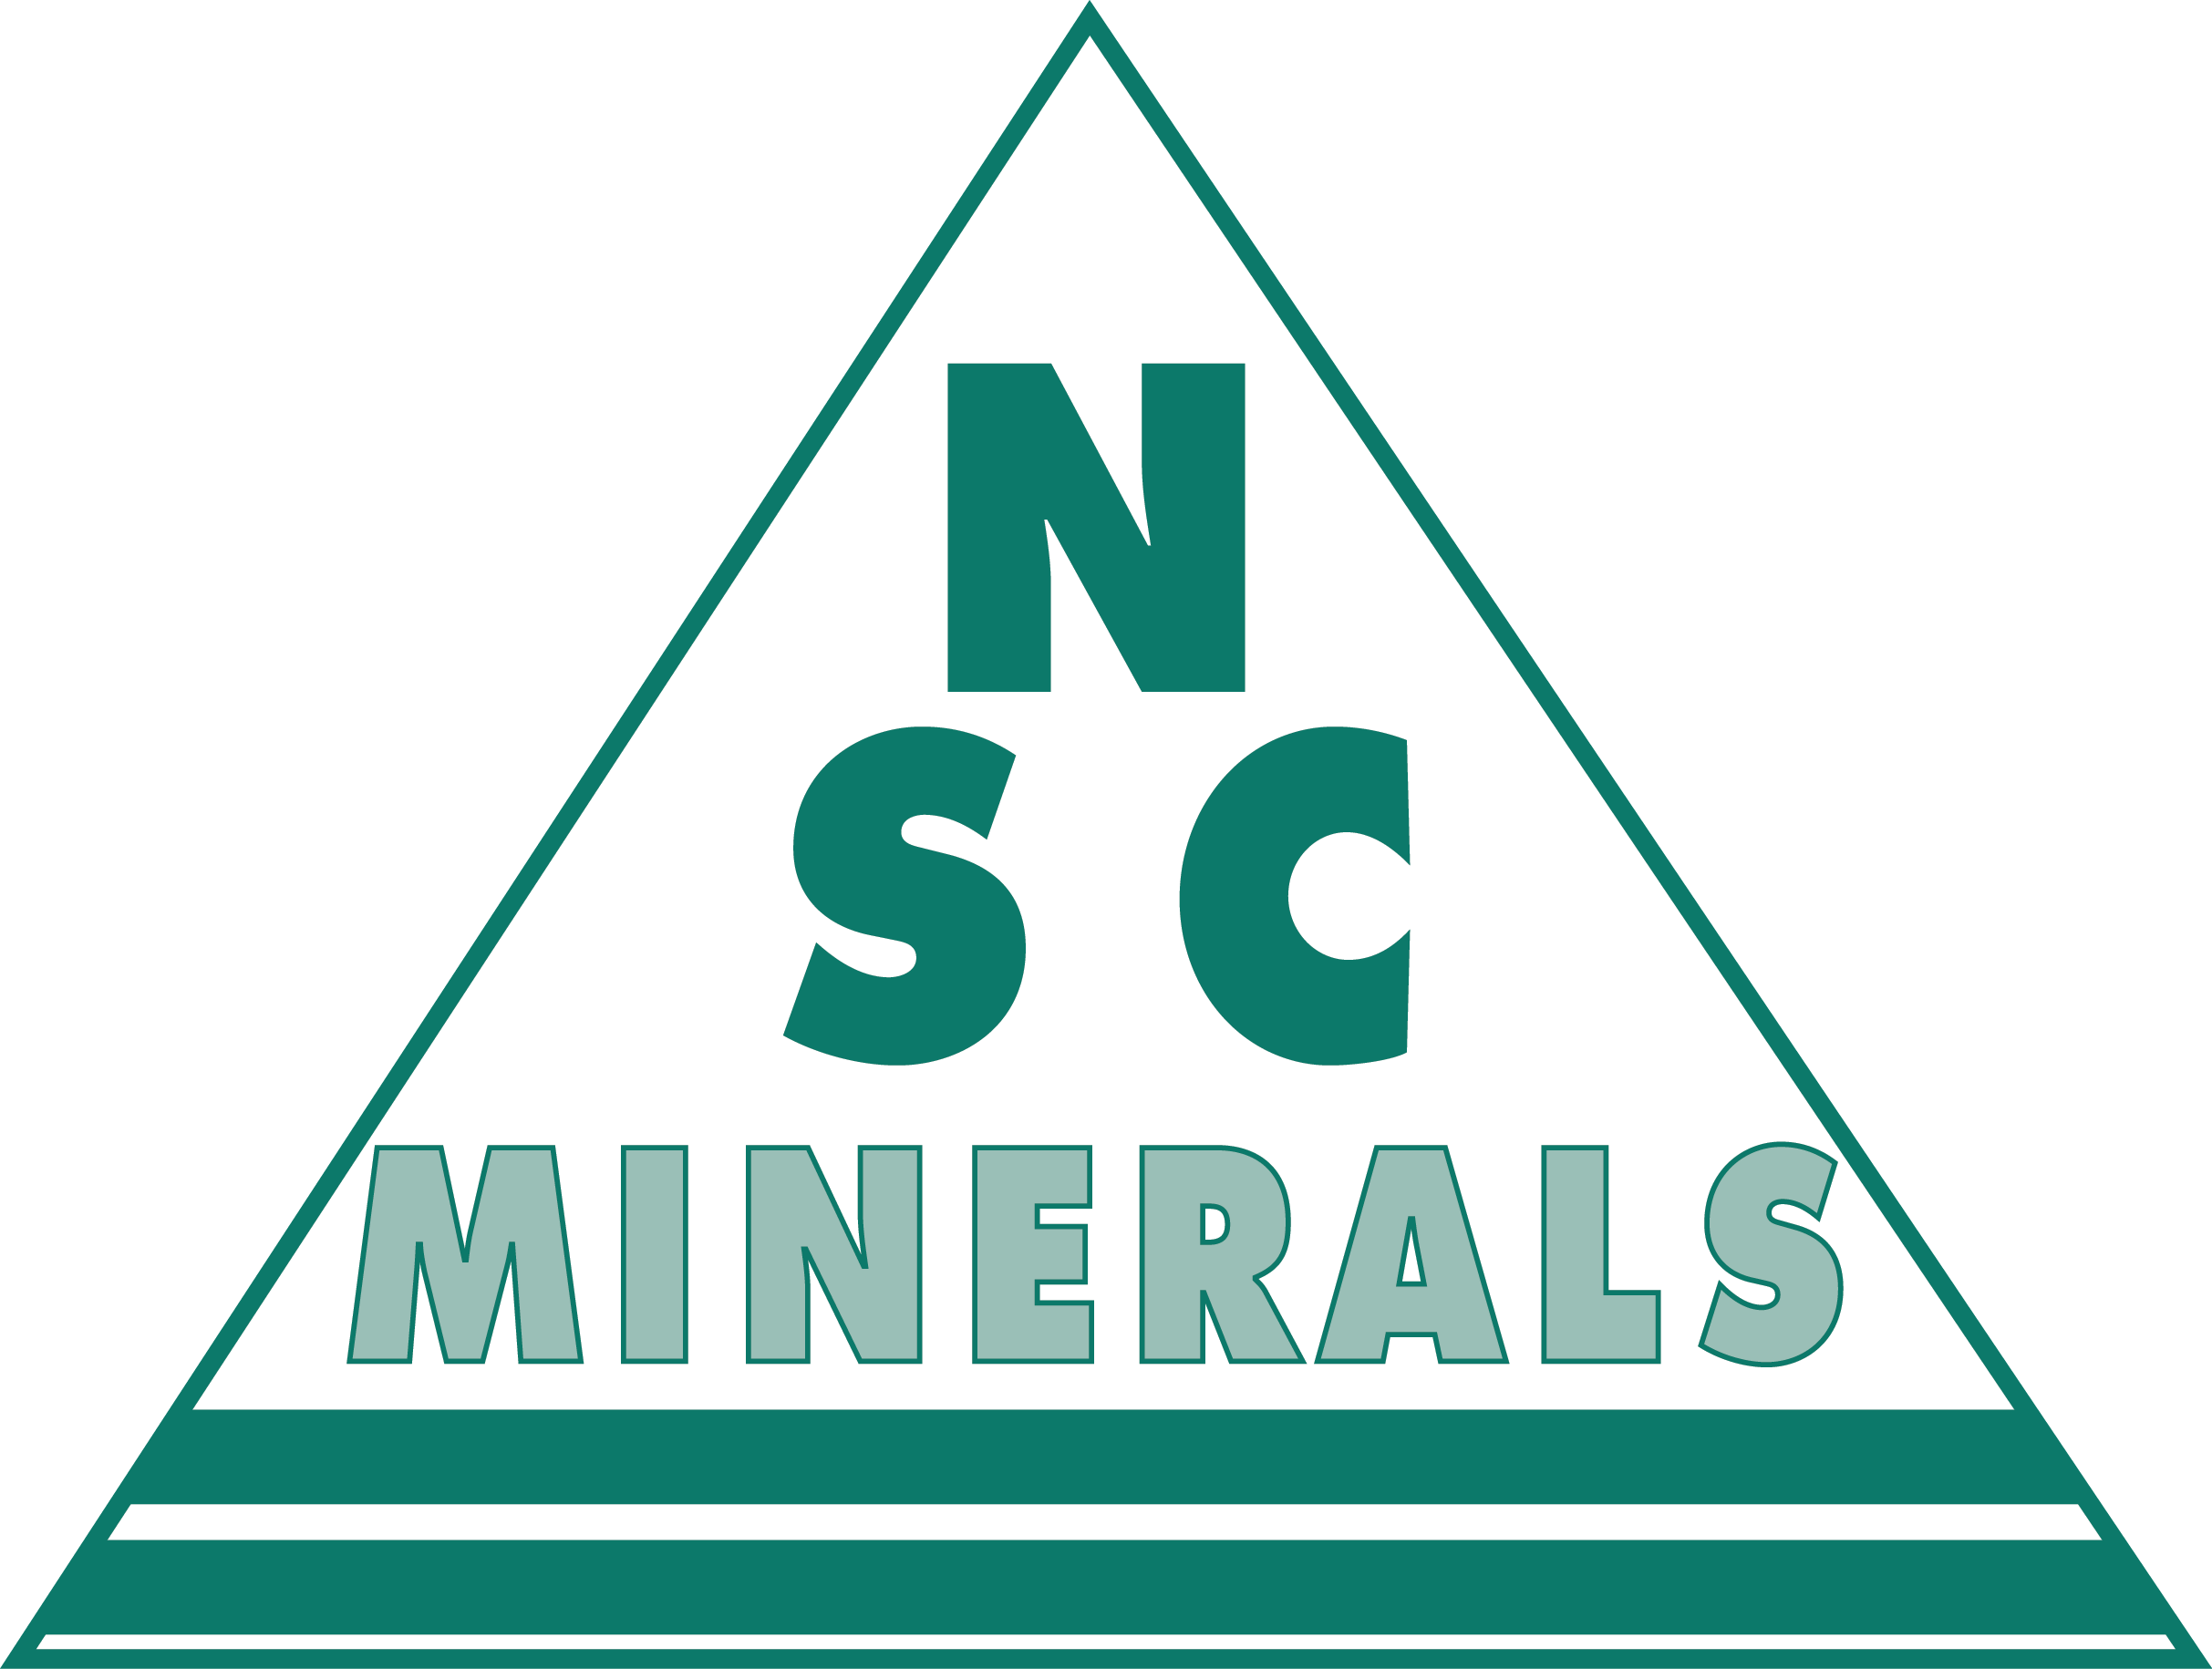 NSC Minerals Ltd. recognize that contributing to the communities in which they live and serve is an integral part of their corporate social responsibility. We were thankful for their donation to help our farm grow and succeed.